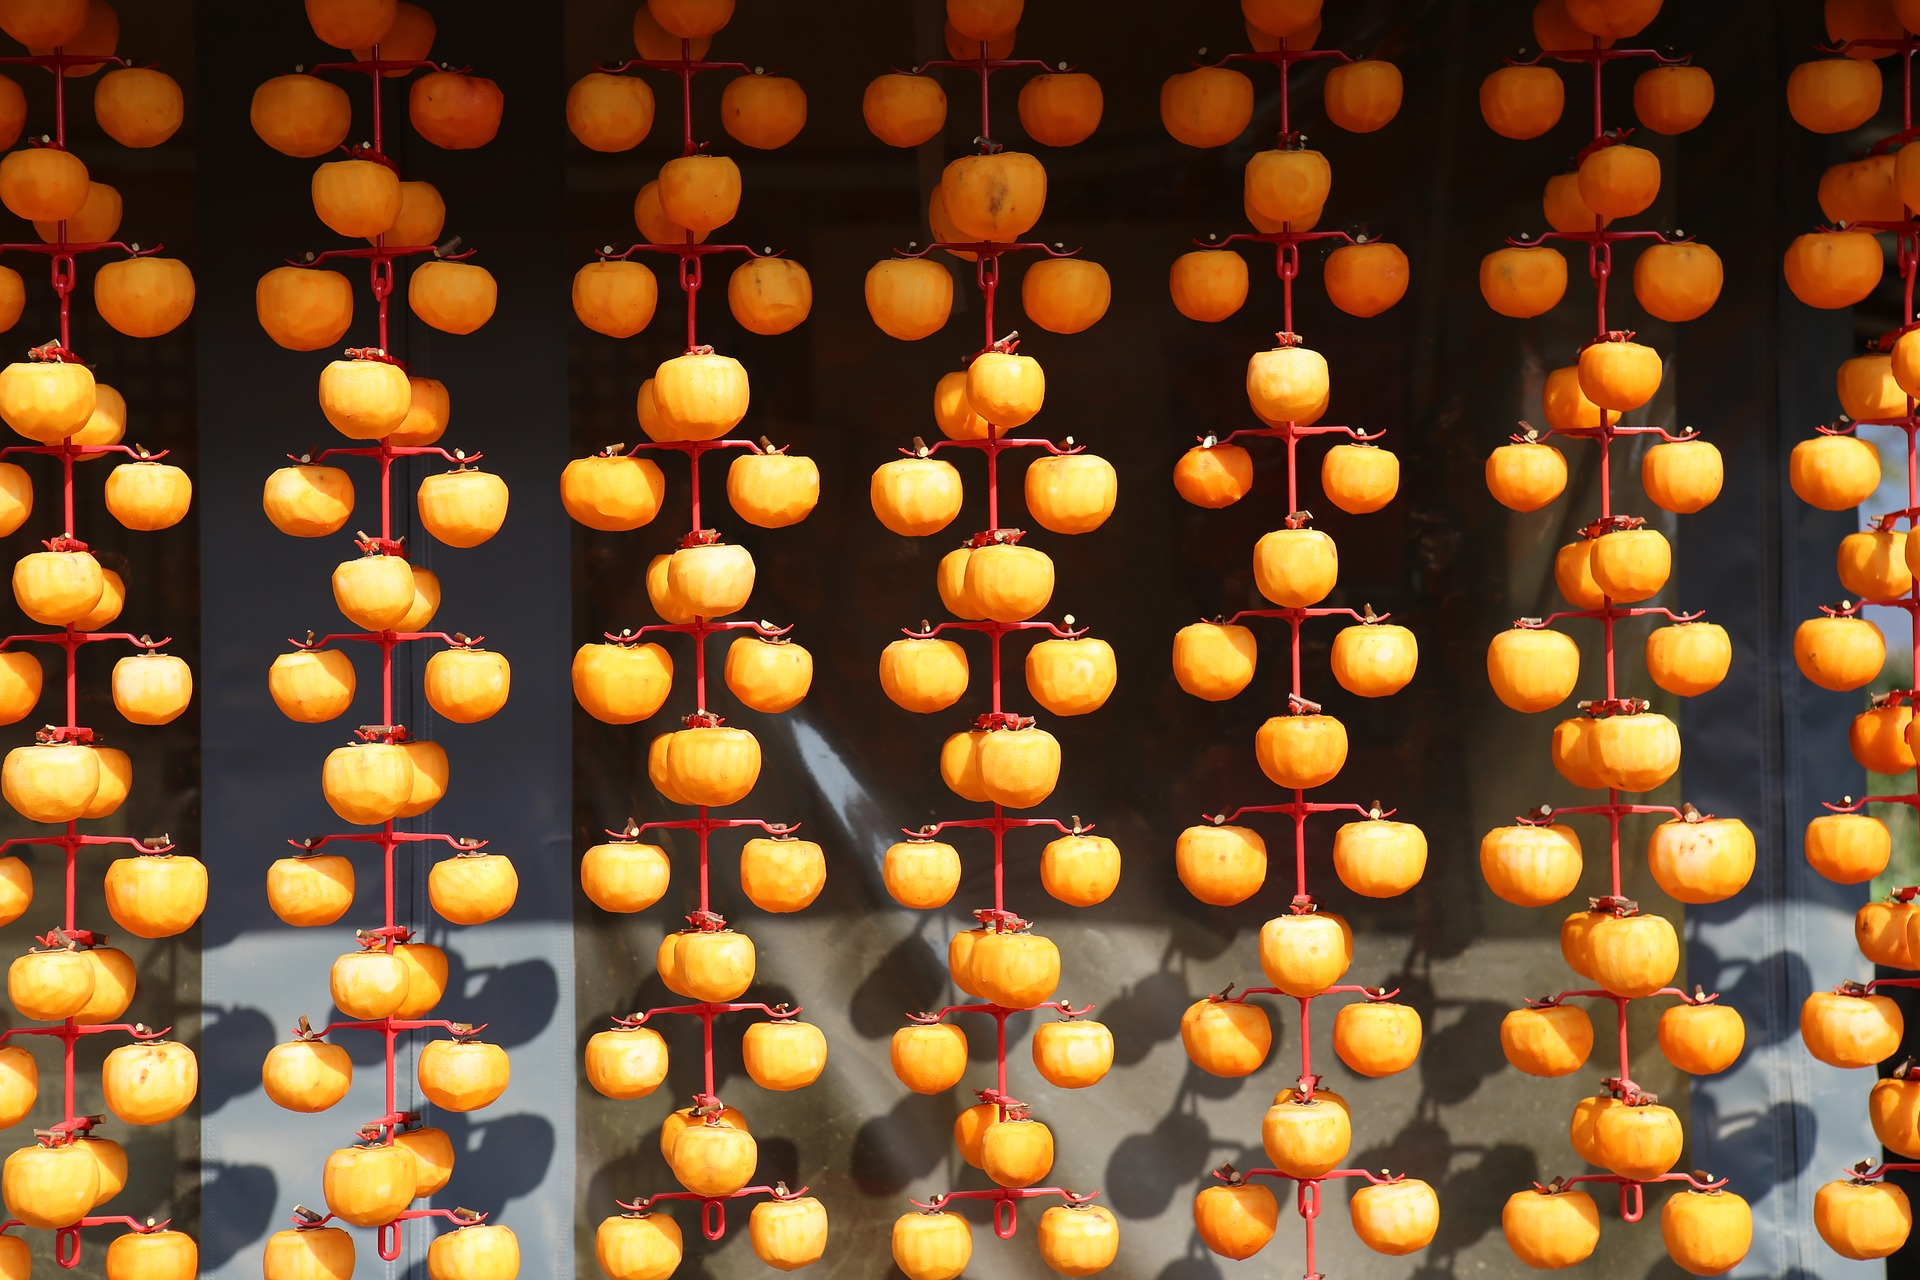 Dried persimmon at Hahoe folk village